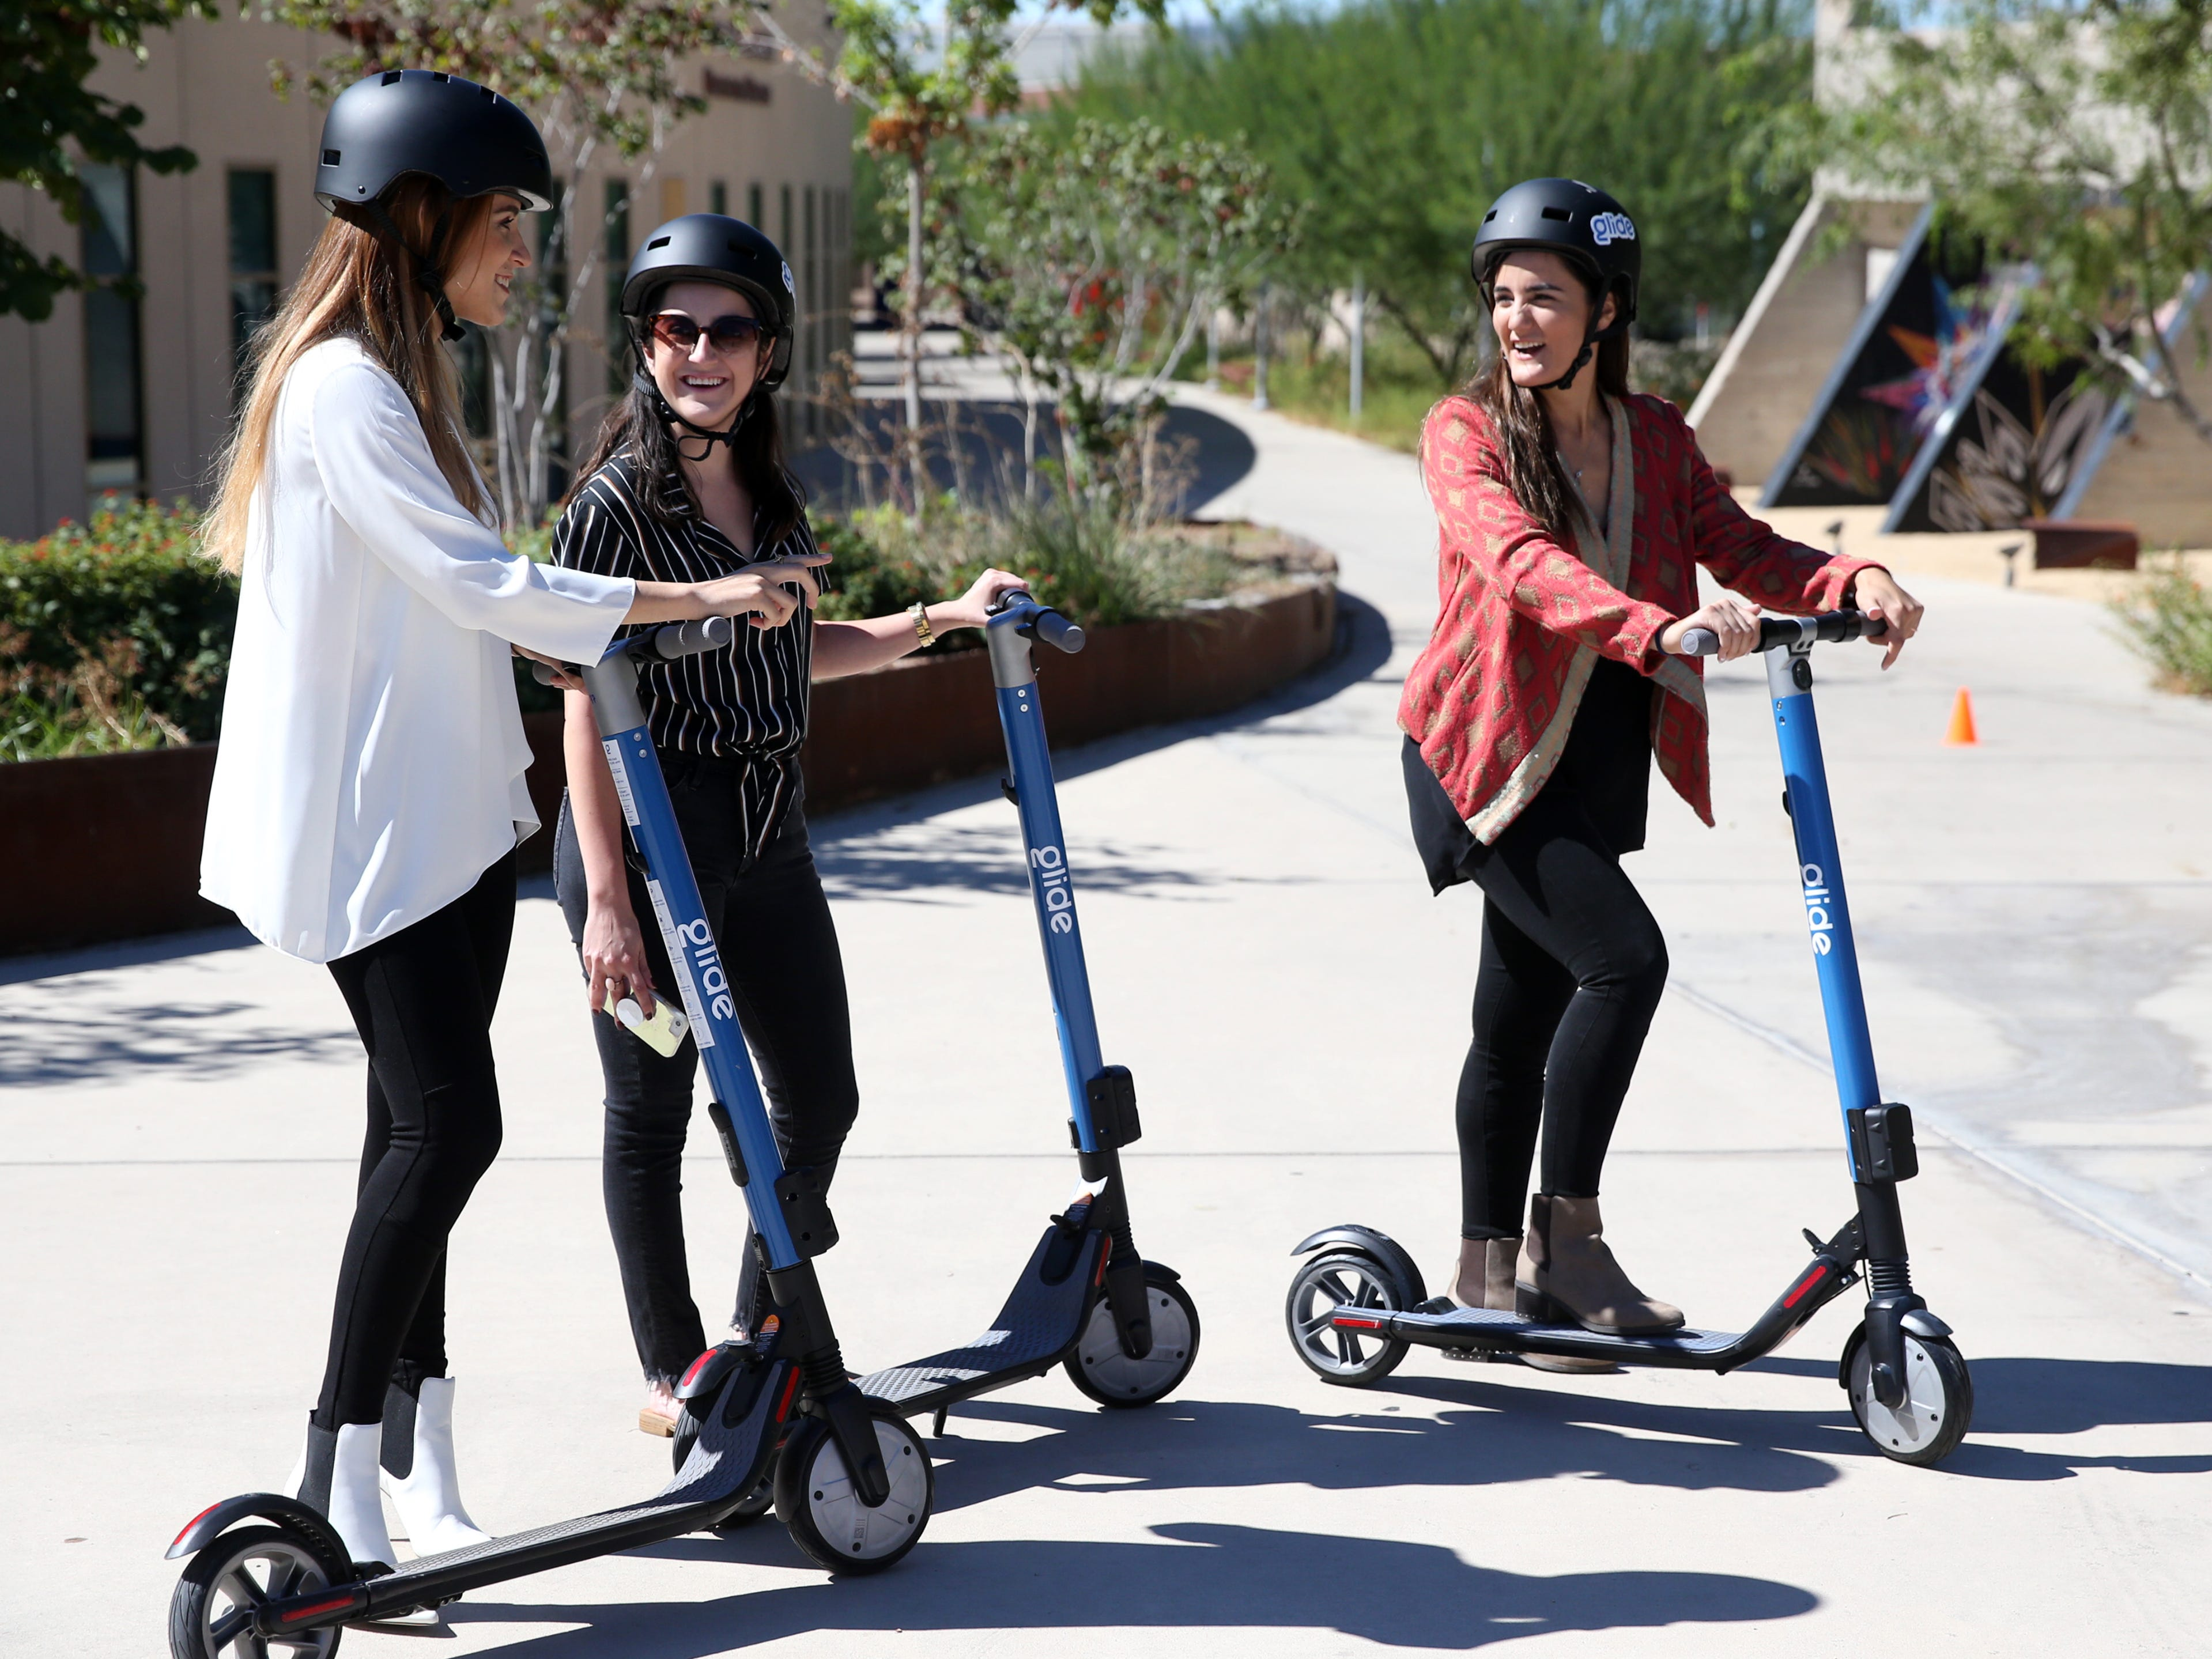 Monica Valdez, from left, Jackie Padilla and Valeria Amato try out the new Glide scooters at the El Paso convention center during the brand launch on Oct. 9, 2018.